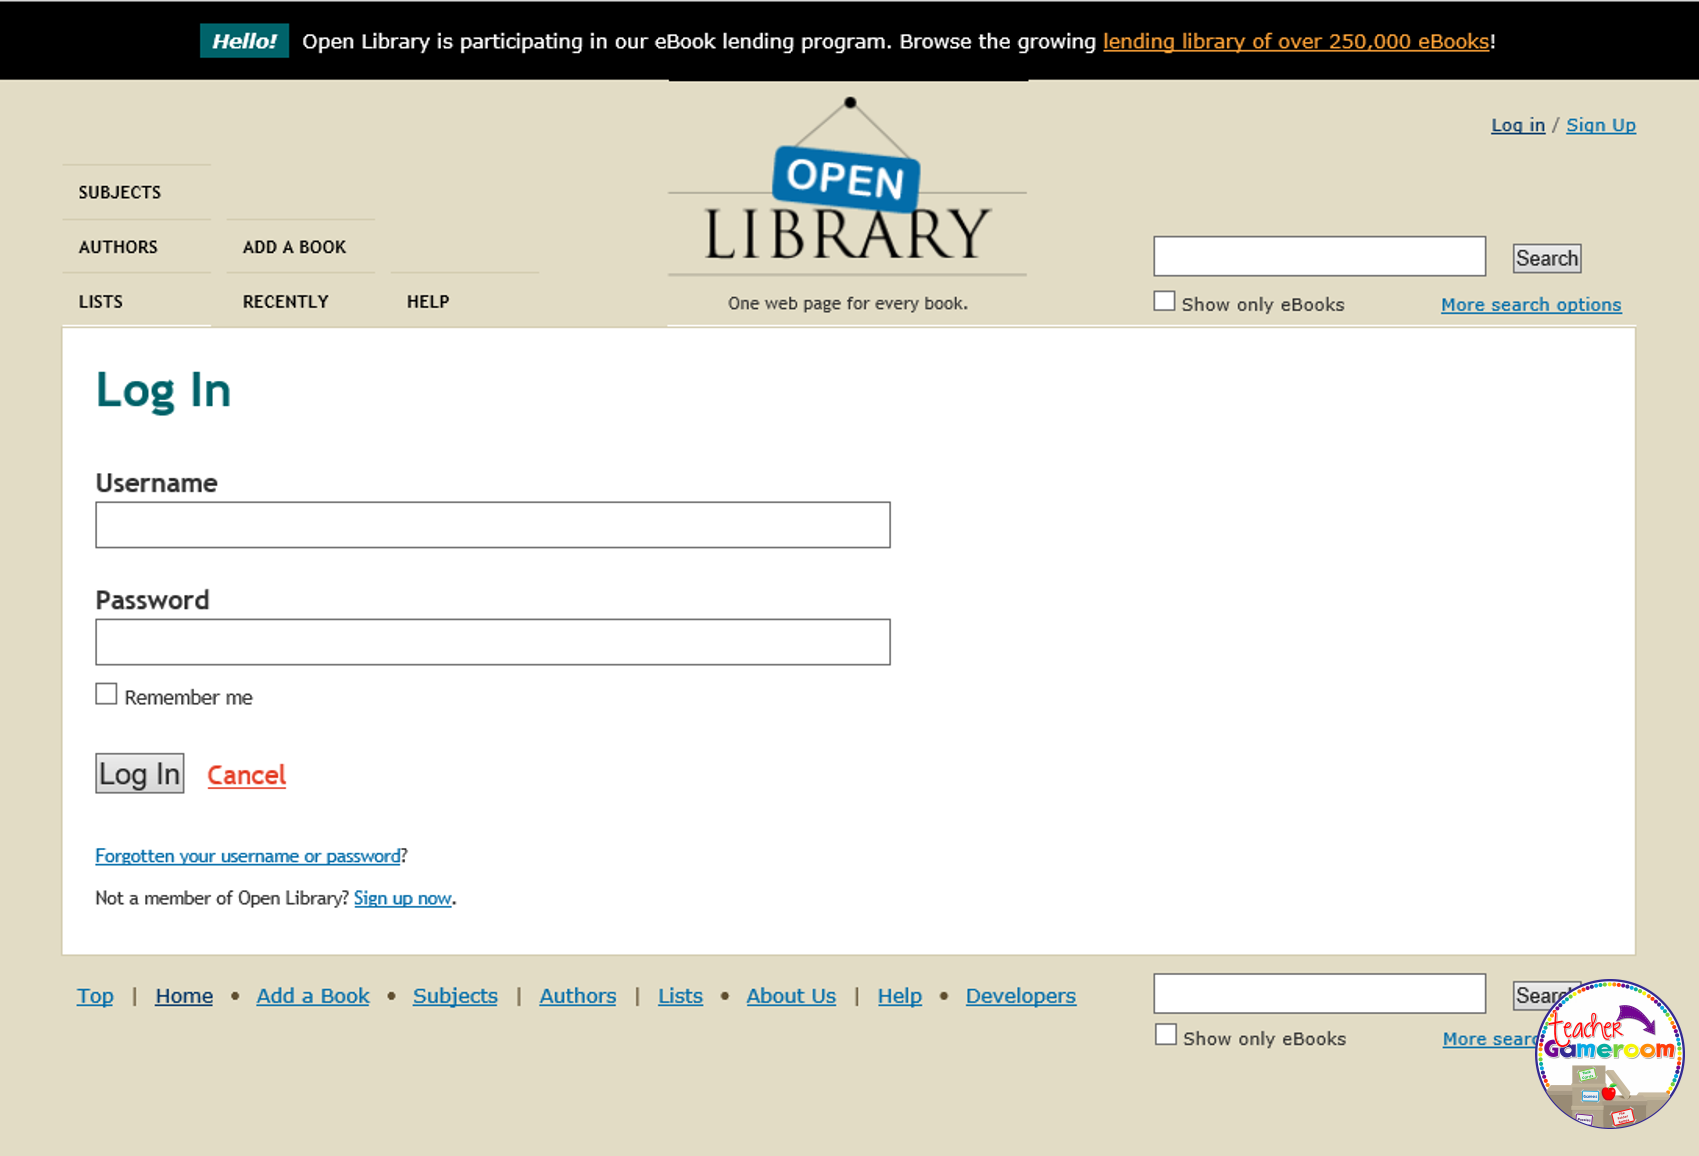 2 - Open Library Log in